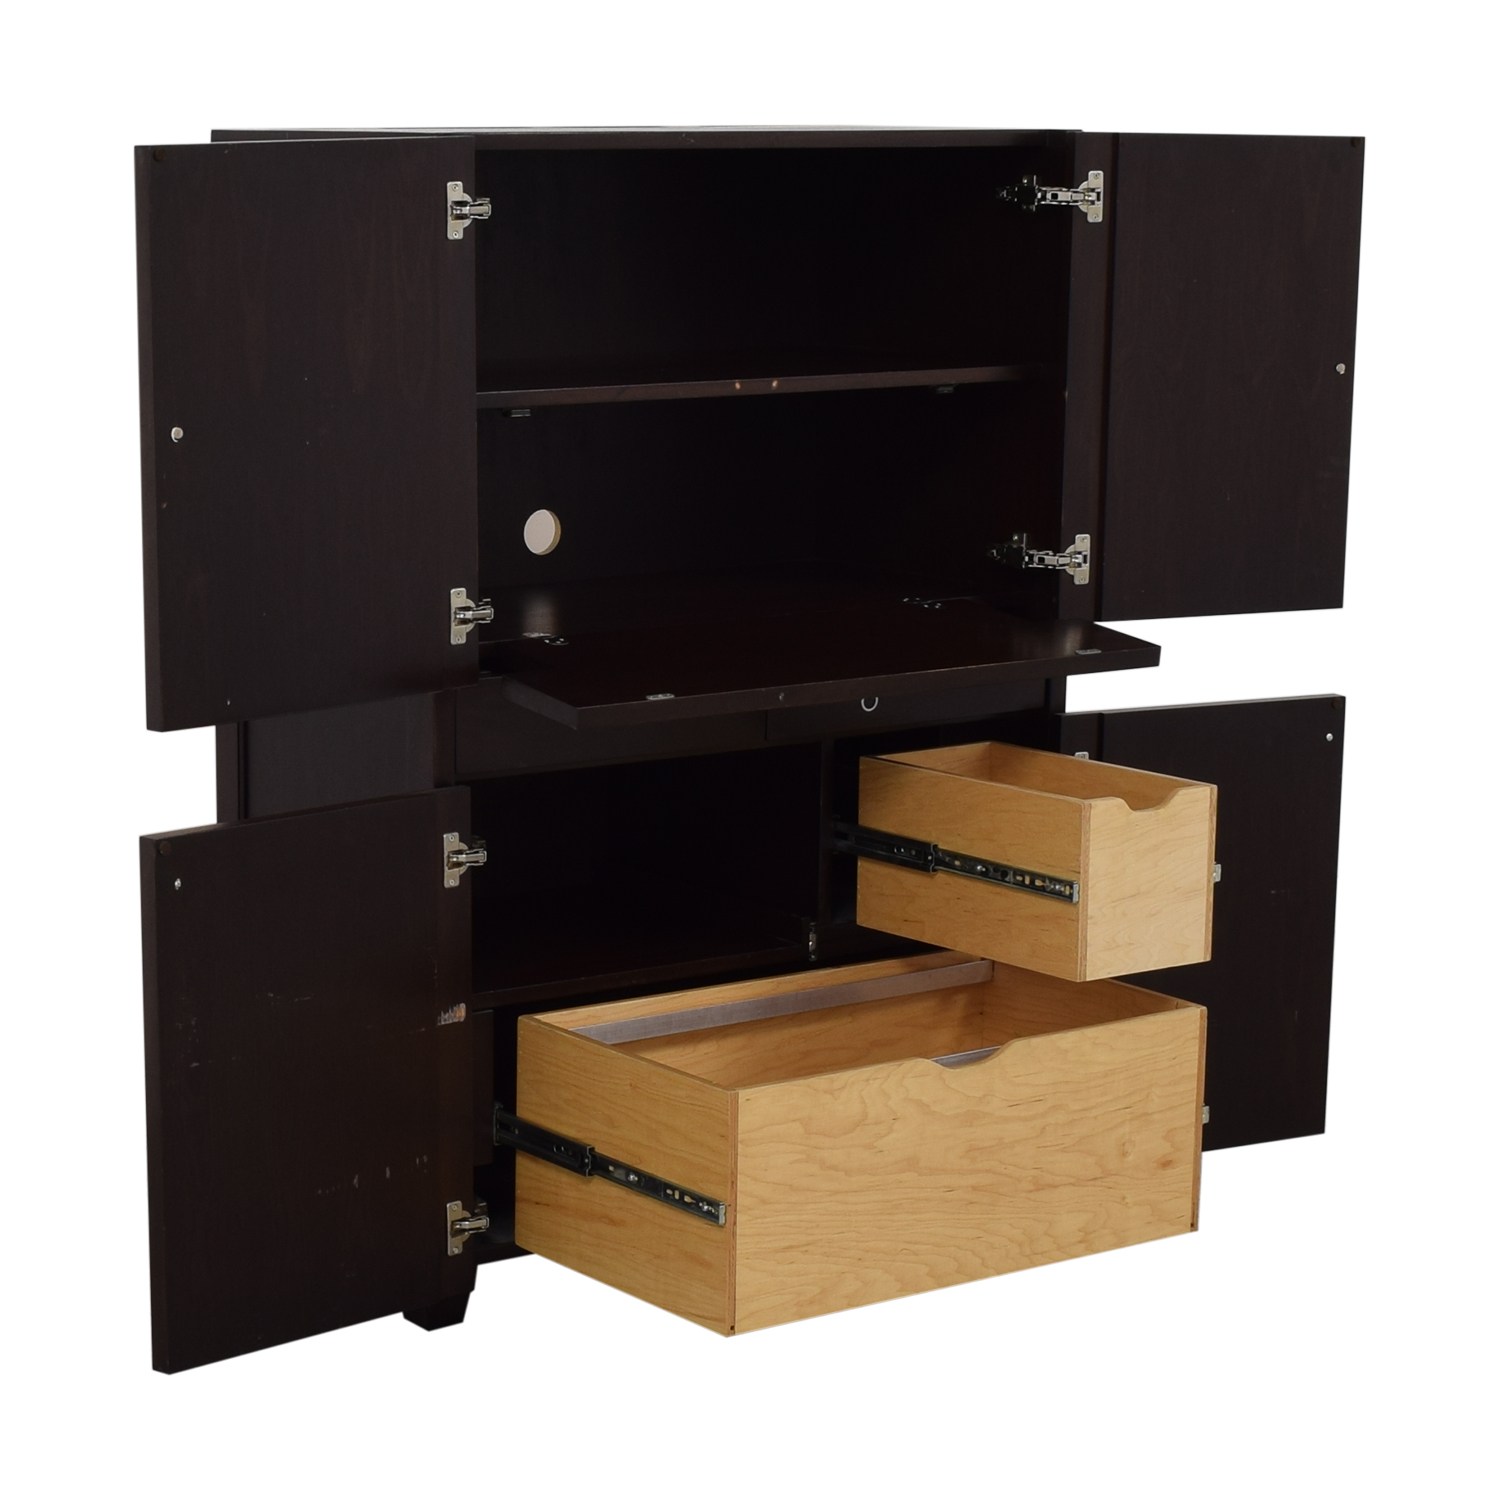 shop  Stationary Cabinet with Drawers online